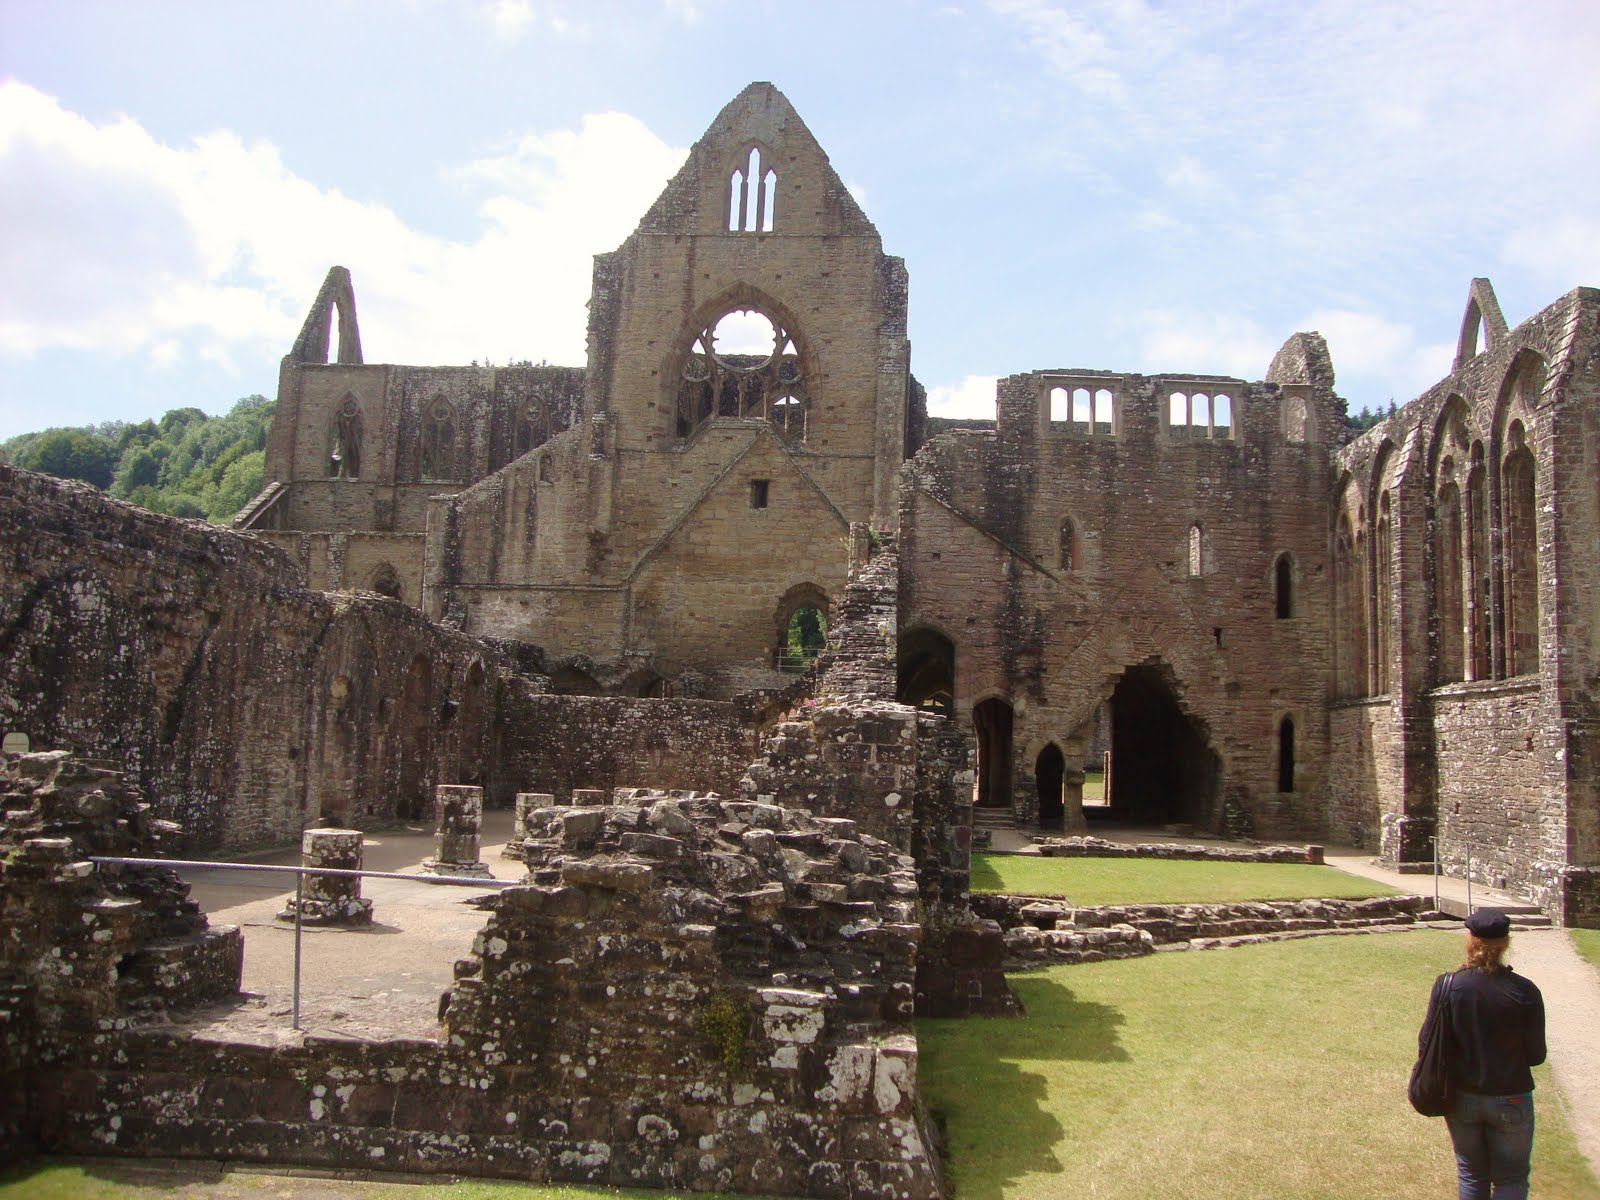 wordsworth tintern abbey as a thesis poem Tintern abbey by william wordsworth: of industrialization in wordsworth's view and poem on wordsworth and memory in tintern abbey see angela bonilla.